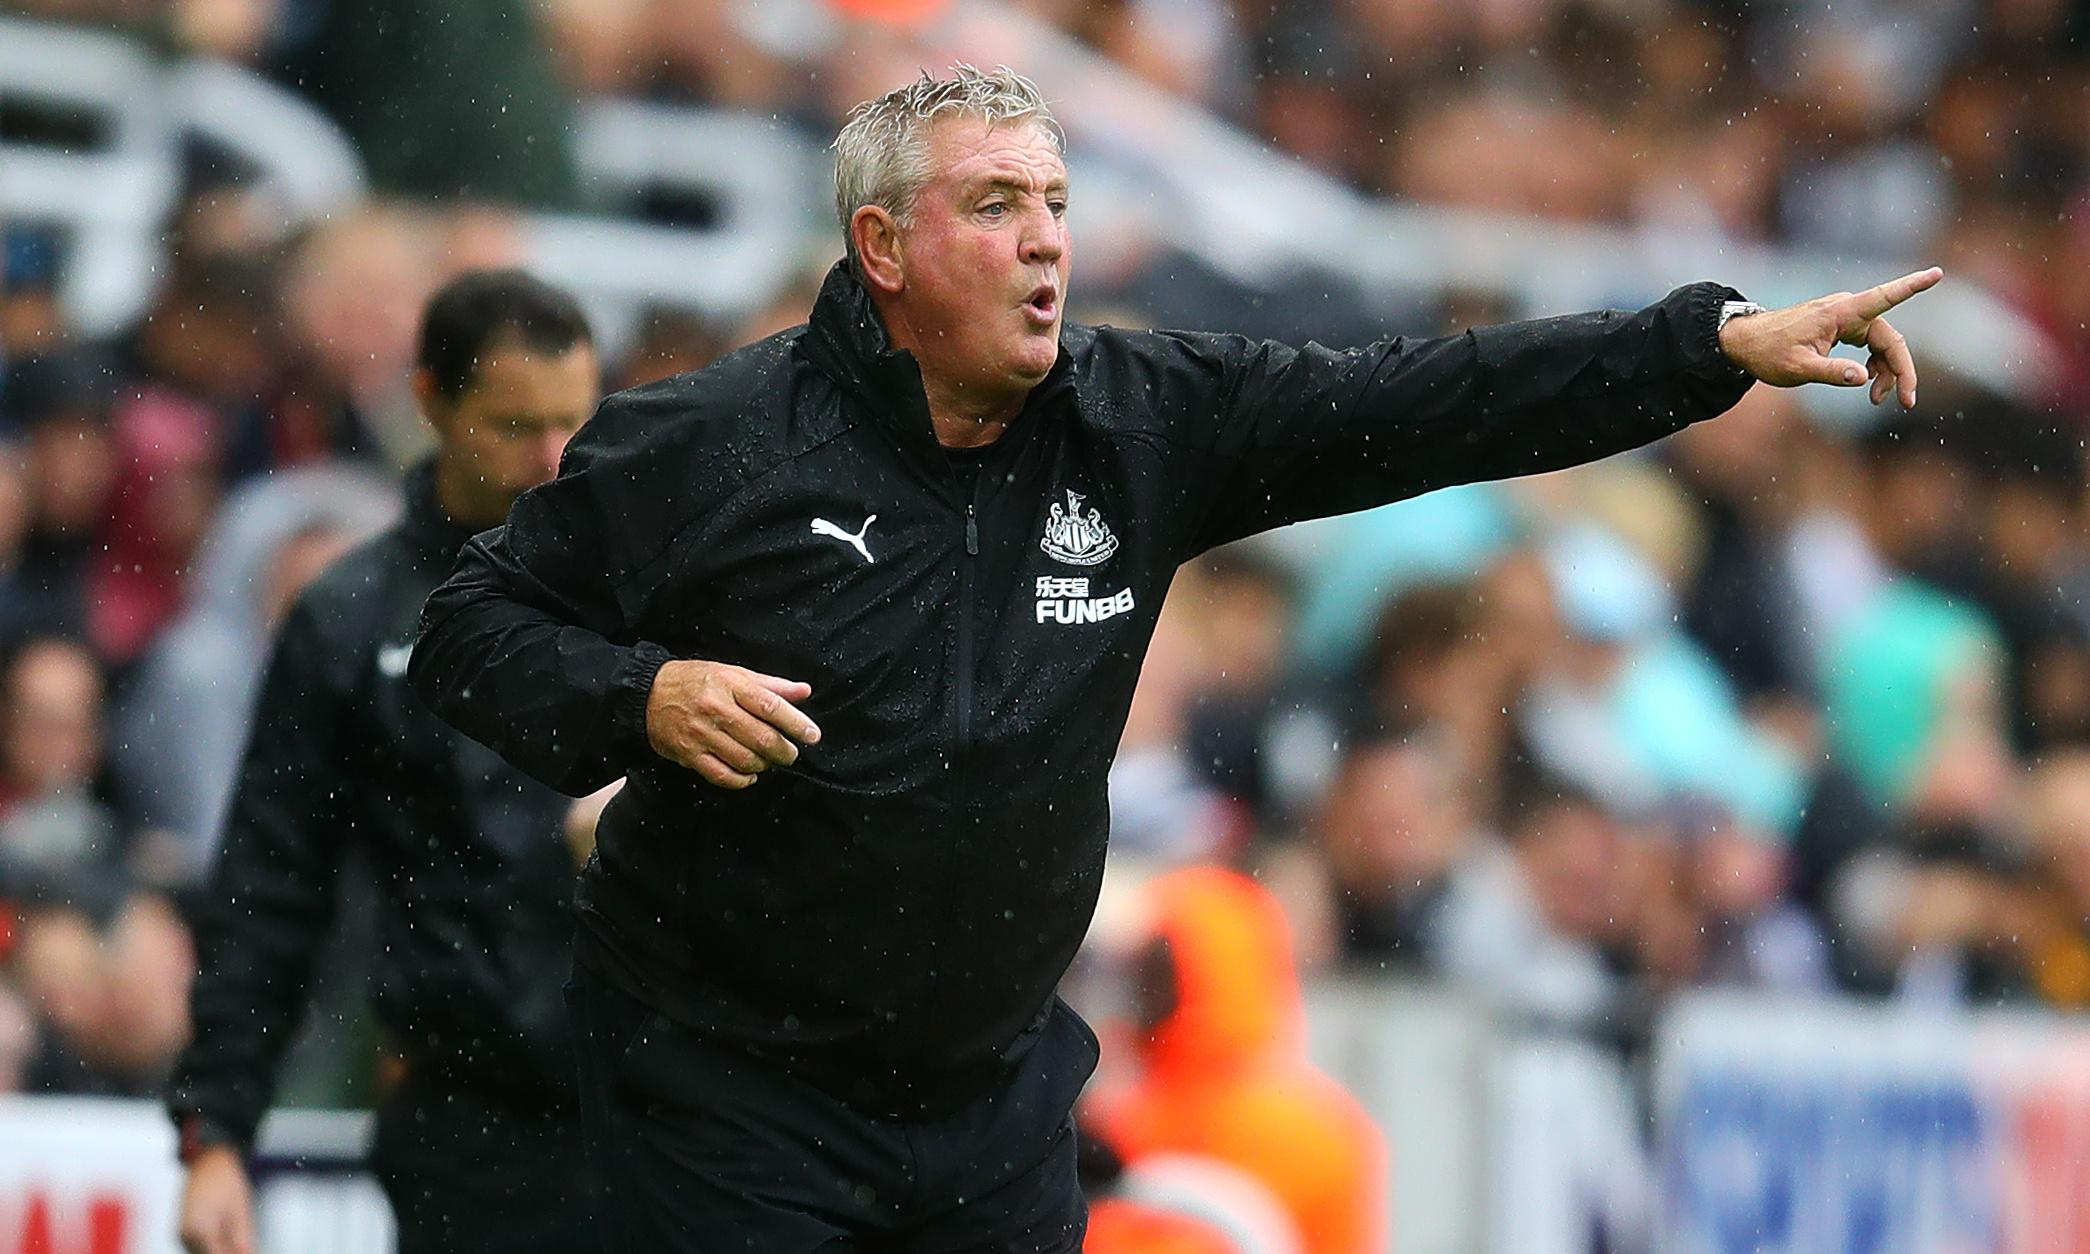 Steve Bruce understands volatile nature of life for manager at Newcastle